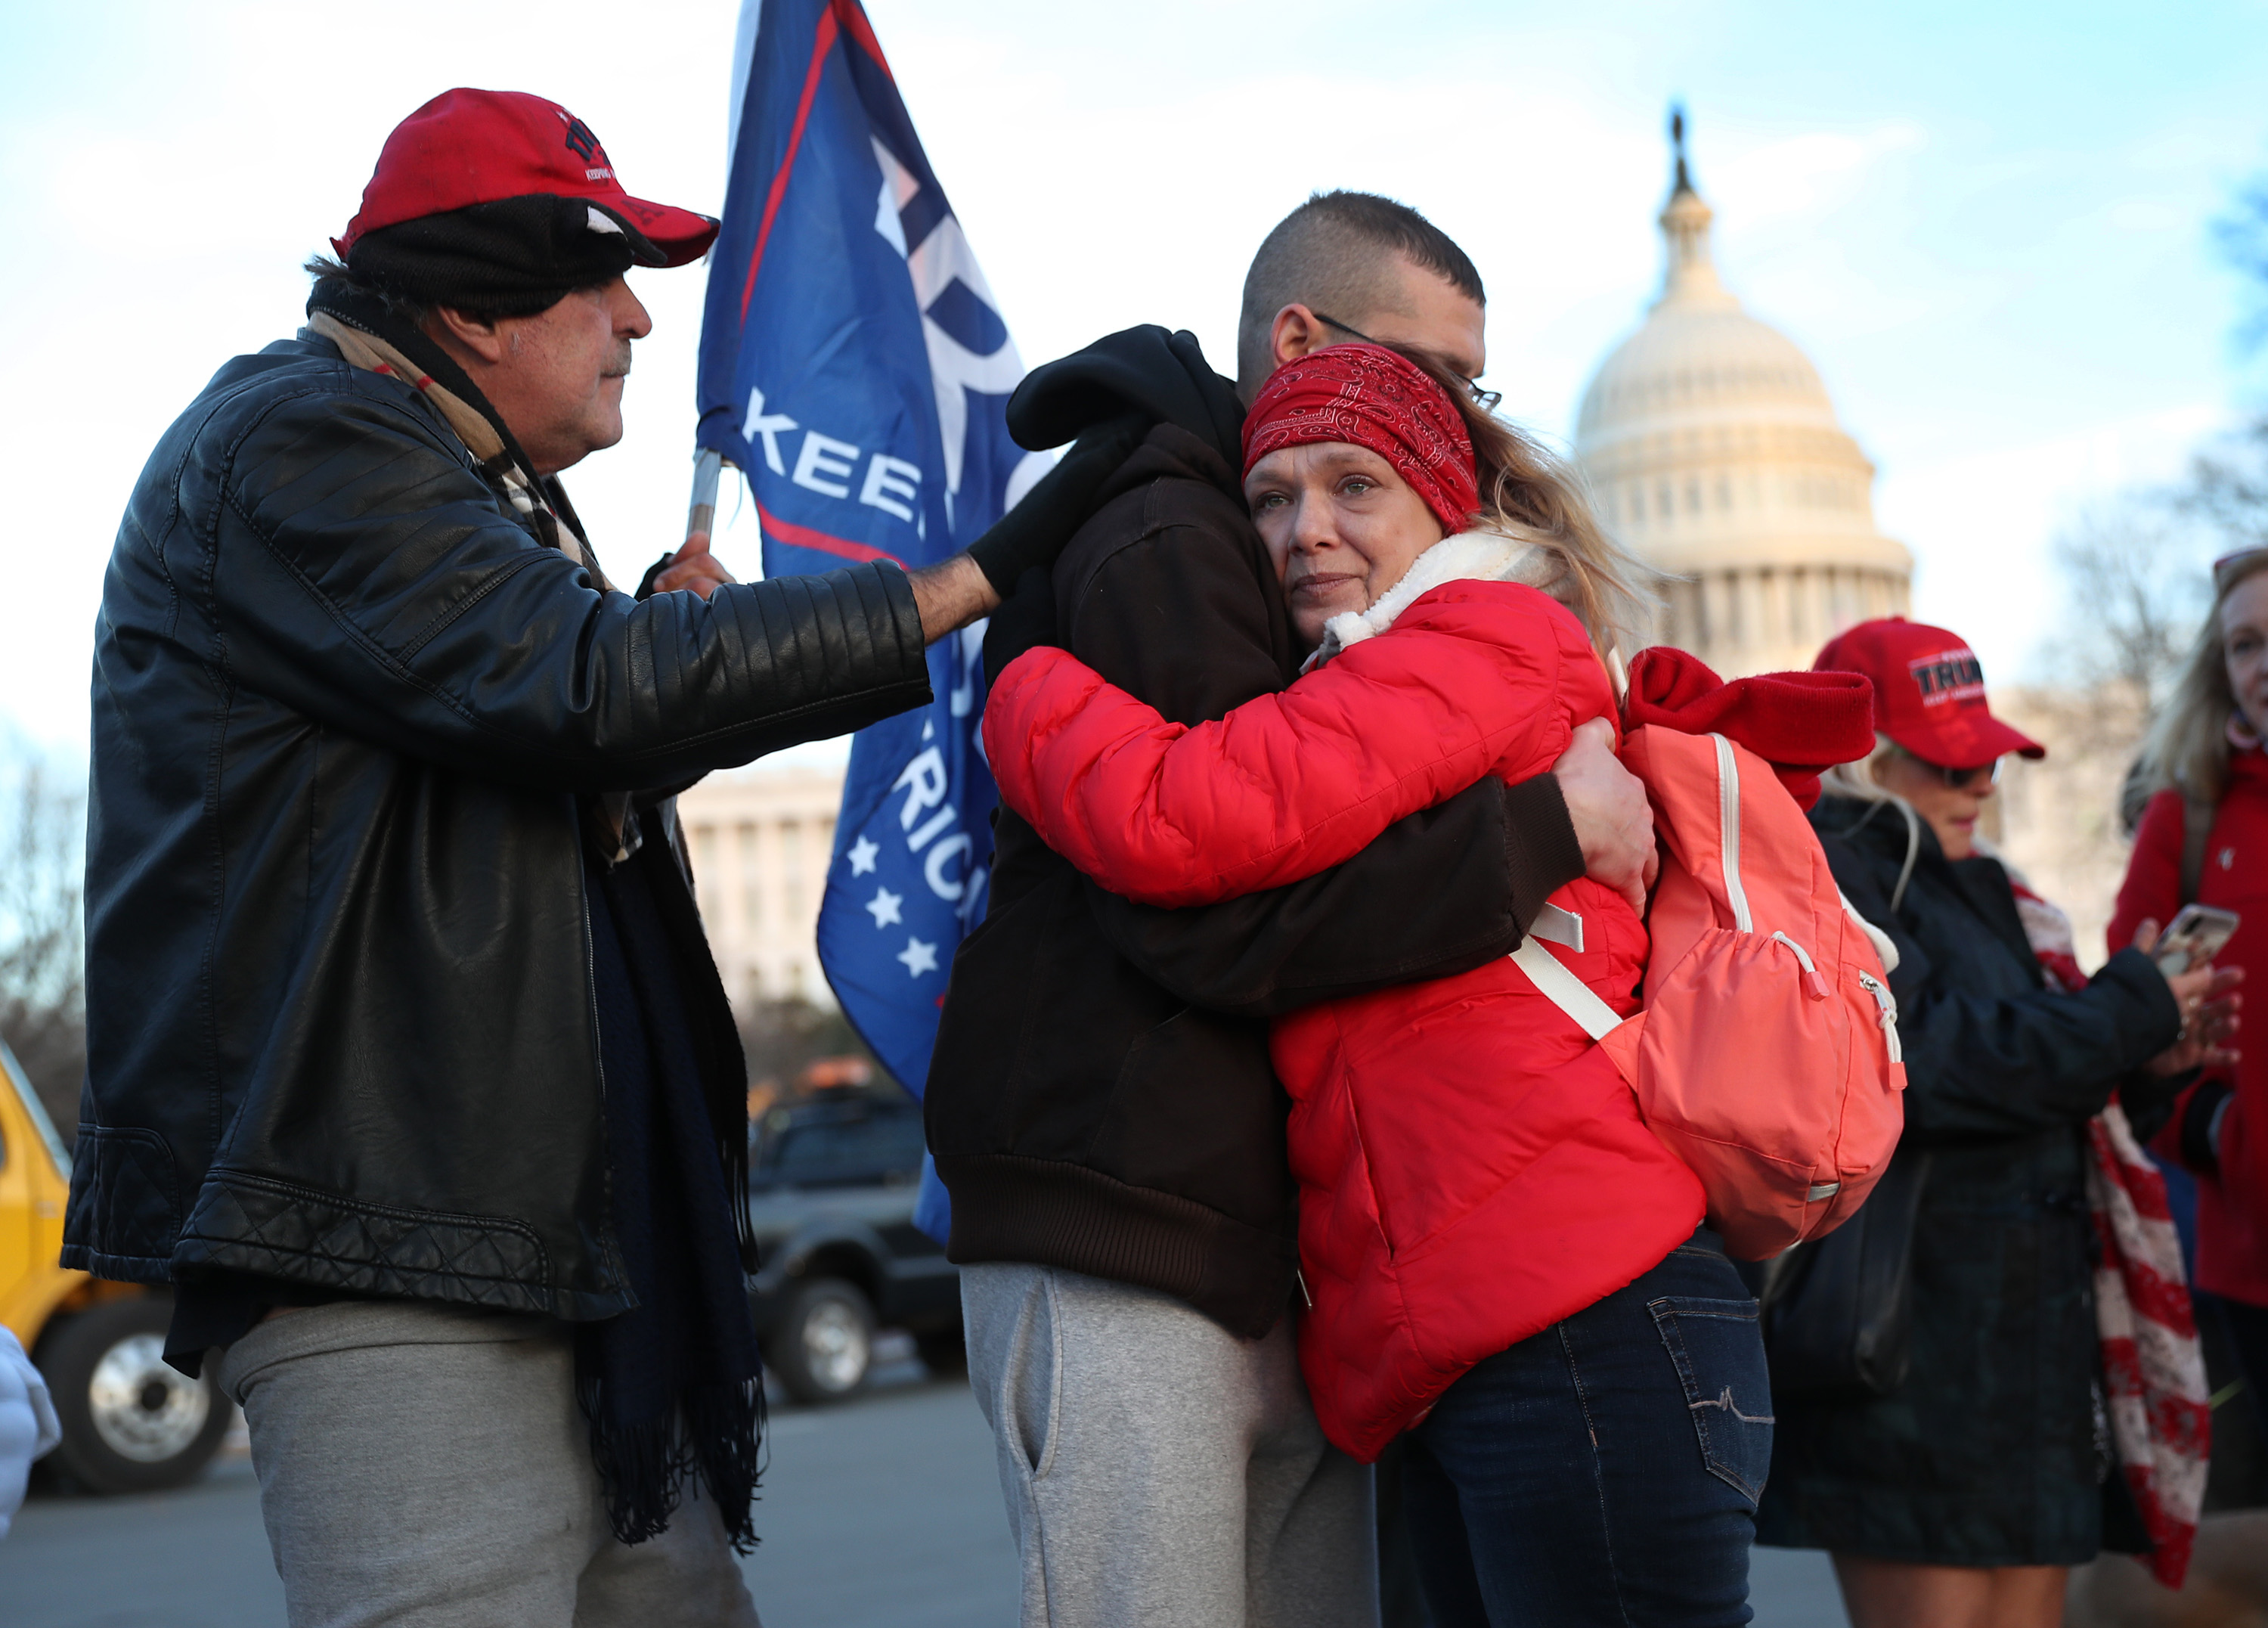 WASHINGTON, DC - JANUARY 07: (L-R) Gary Phaneuf, Tony Naples and Melody Black share a moment together as they visit a memorial setup near the U.S. Capitol Building for Ashli Babbitt who was killed in the building after a pro-Trump mob broke in on January 07, 2021 in Washington, DC. Congress finished tallying the Electoral College votes and Joe Biden was certified as the winner of the 2020 presidential election. (Photo by Joe Raedle/Getty Images)